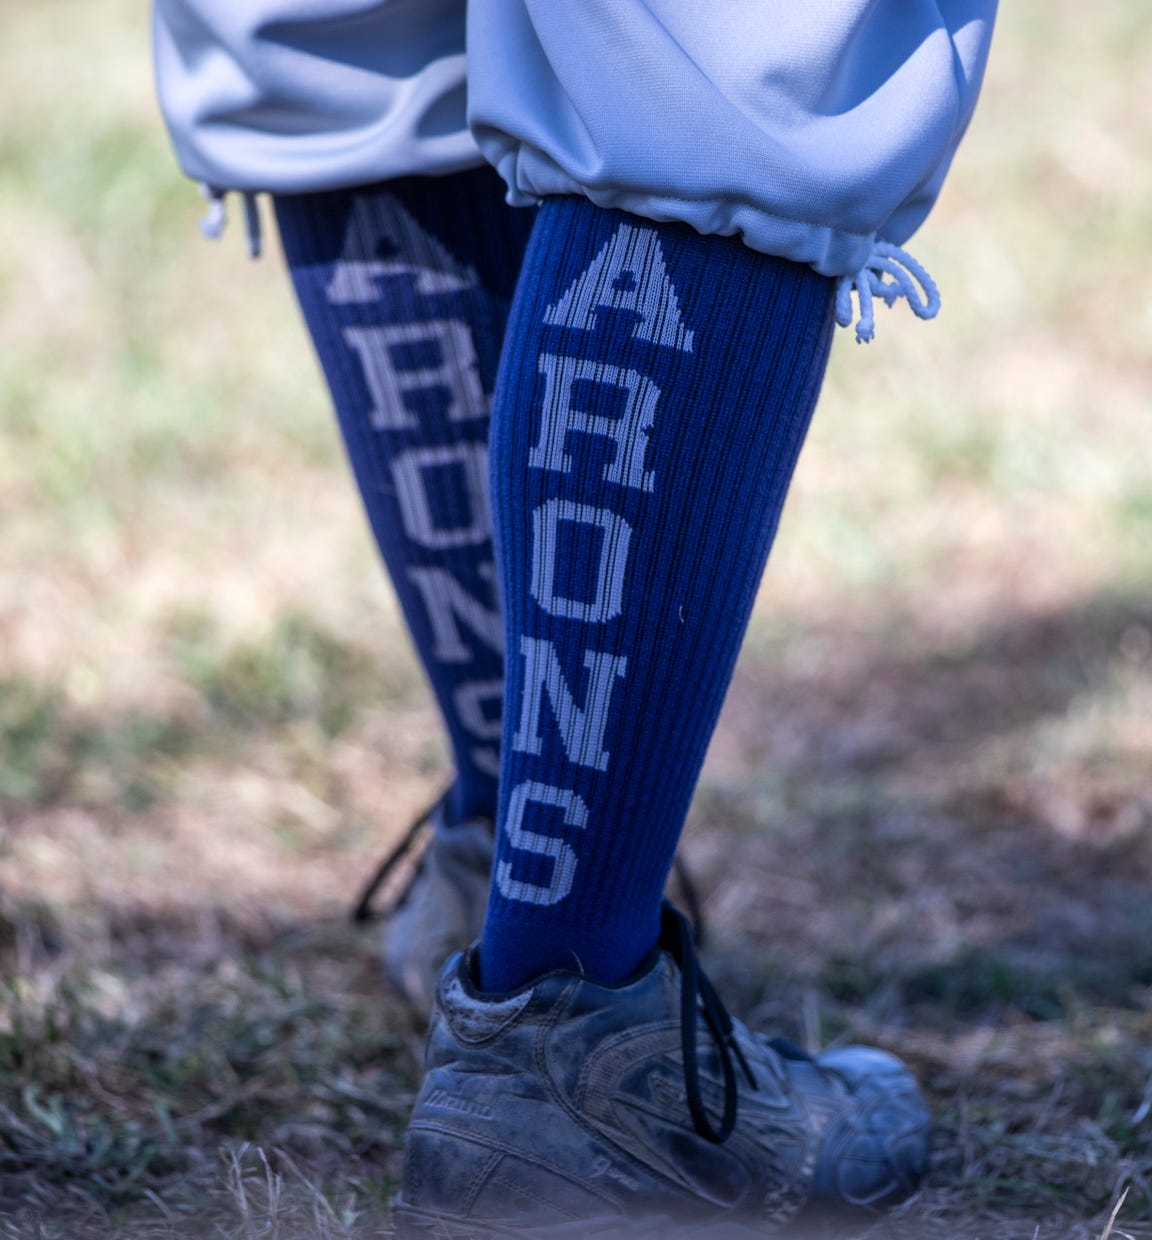 Bluegrass Baron's Dave Allen's socks spell out the name of his team. Oct. 13, 2019